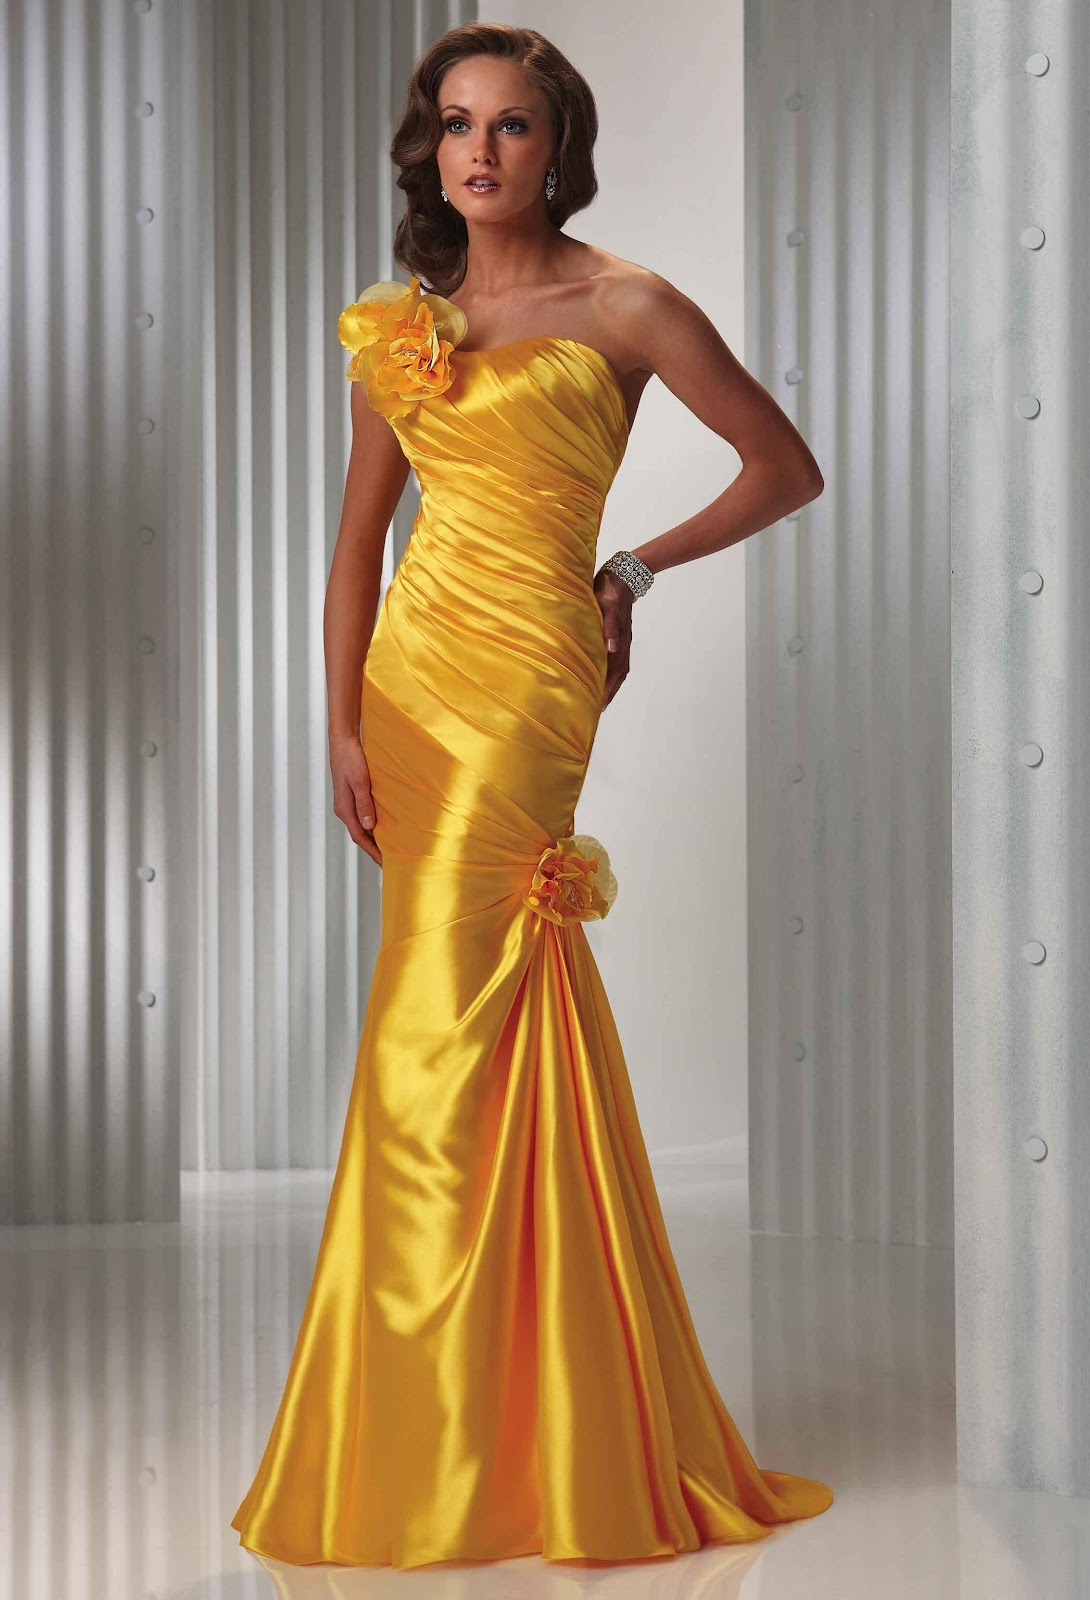 WhiteAzalea Evening Dresses: Tips for Choosing Evening Dresses